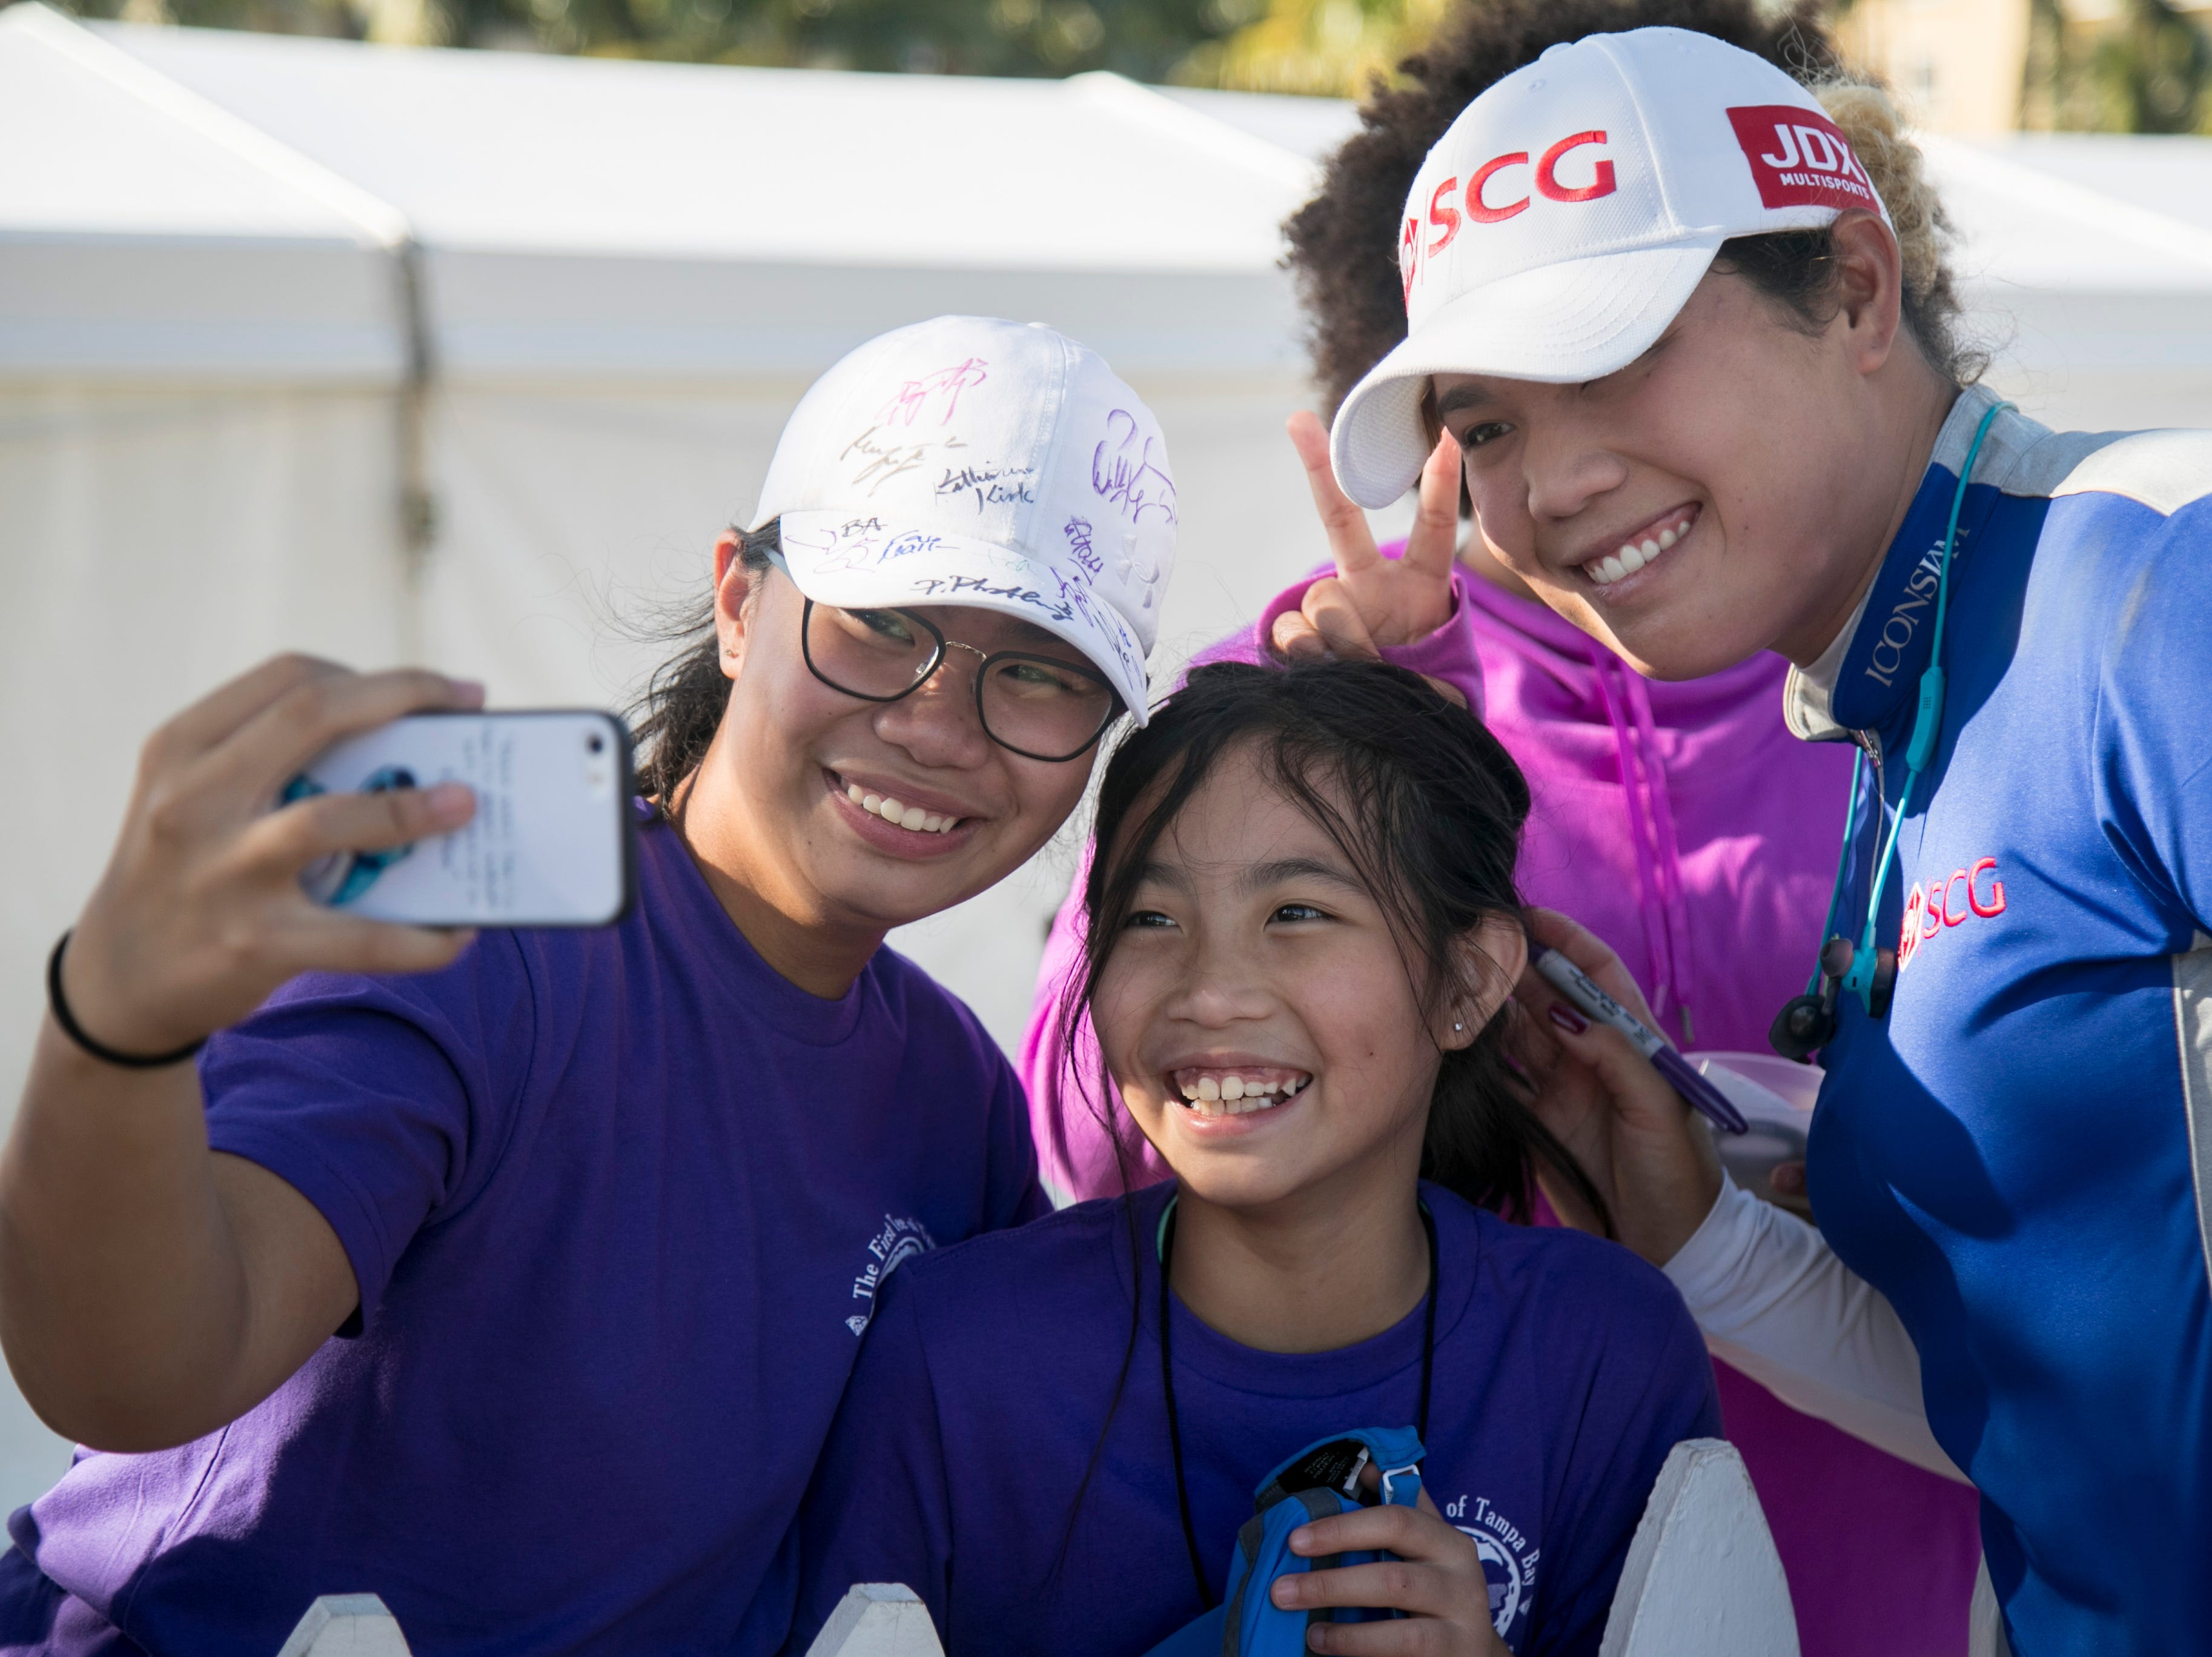 Hazel Paredes, left, and her sister Dylan get a selfie with Ariya Jutanugarn after the third round of the CME Group Tour Championship on Saturday, November 17, 2018, at Tiburon Golf Club in Naples.